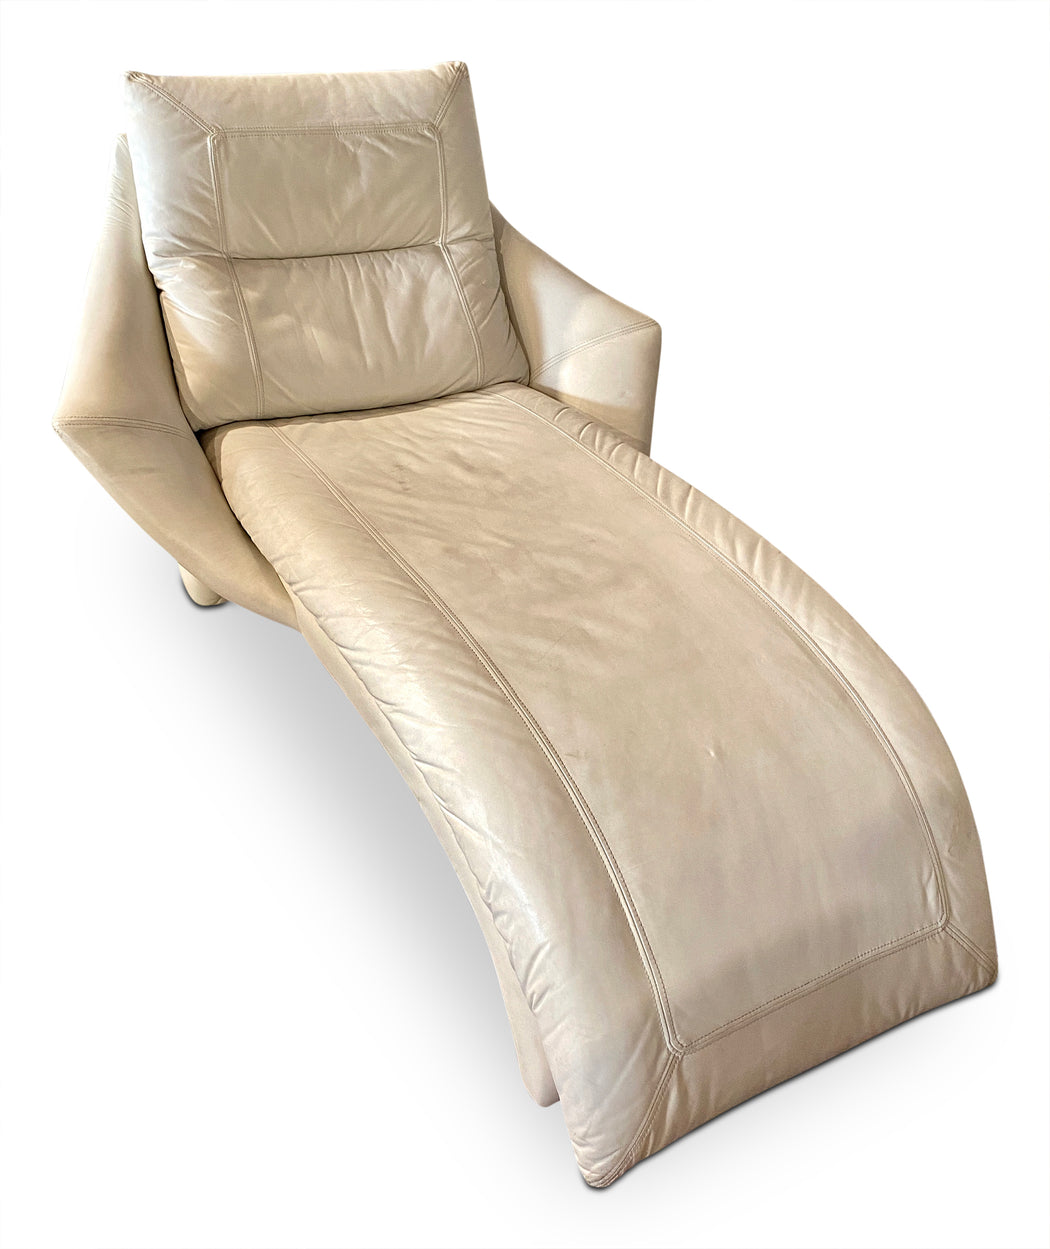 White Leather Lounger